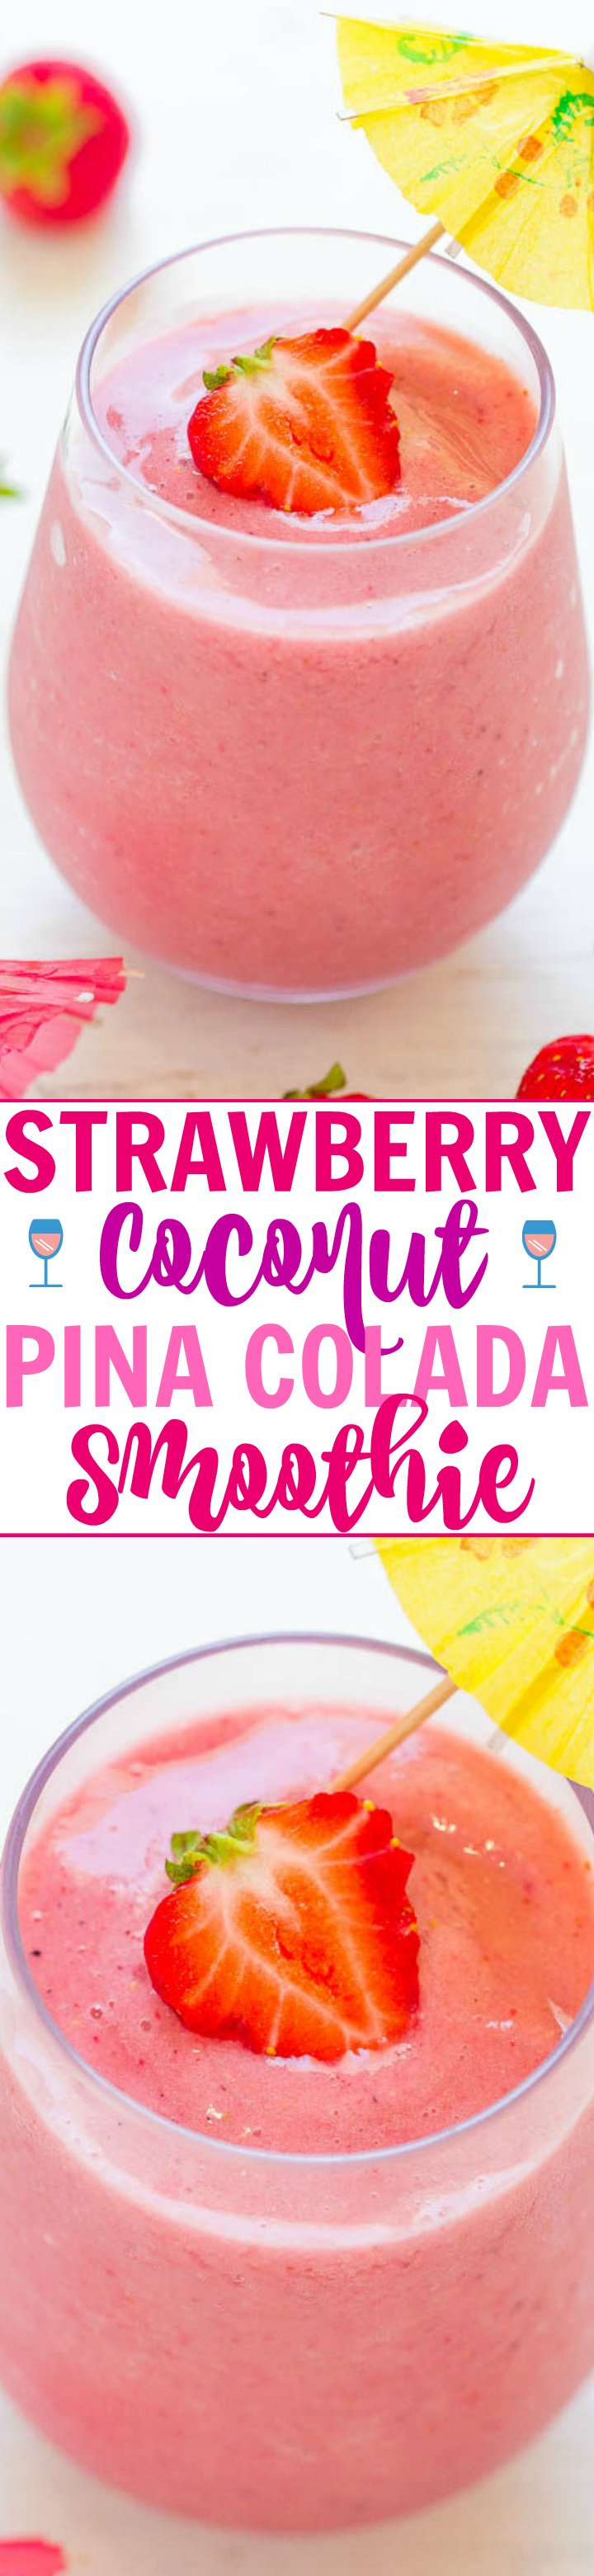 Strawberry Coconut Pina Colada Smoothie - A smoothie that tastes like a strawberry pina colada!! Fast, easy, refreshing, naturally sweet, and made with ONLY 3 INGREDIENTS!!